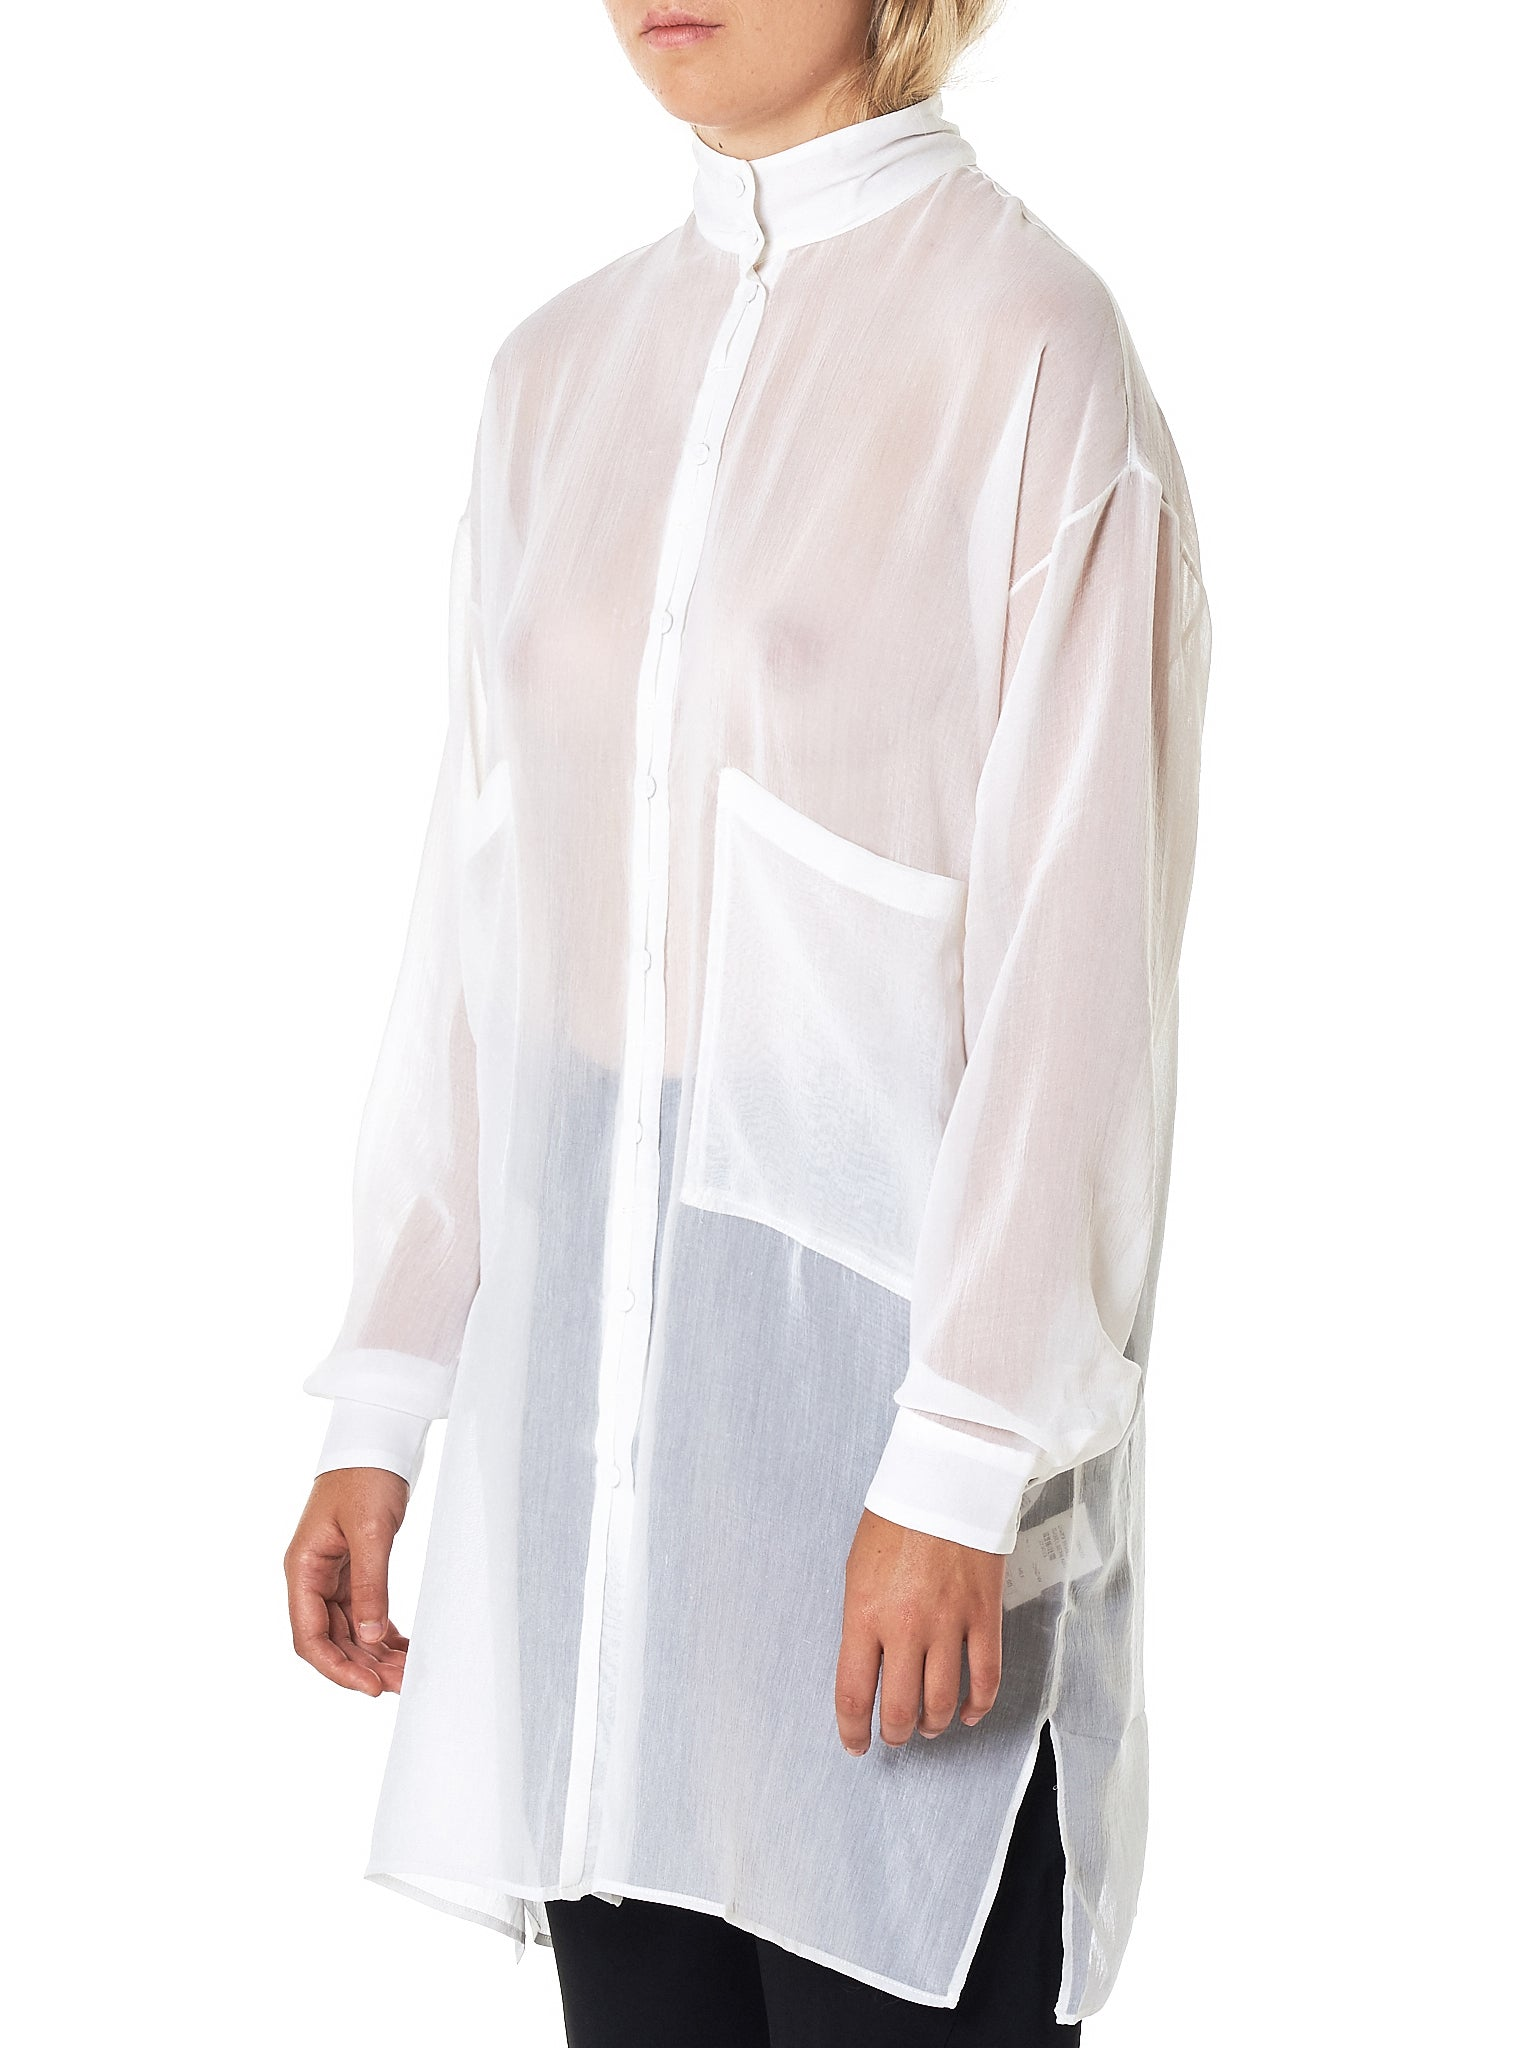 Isabel Benenato Shirt - Hlorenzo Side